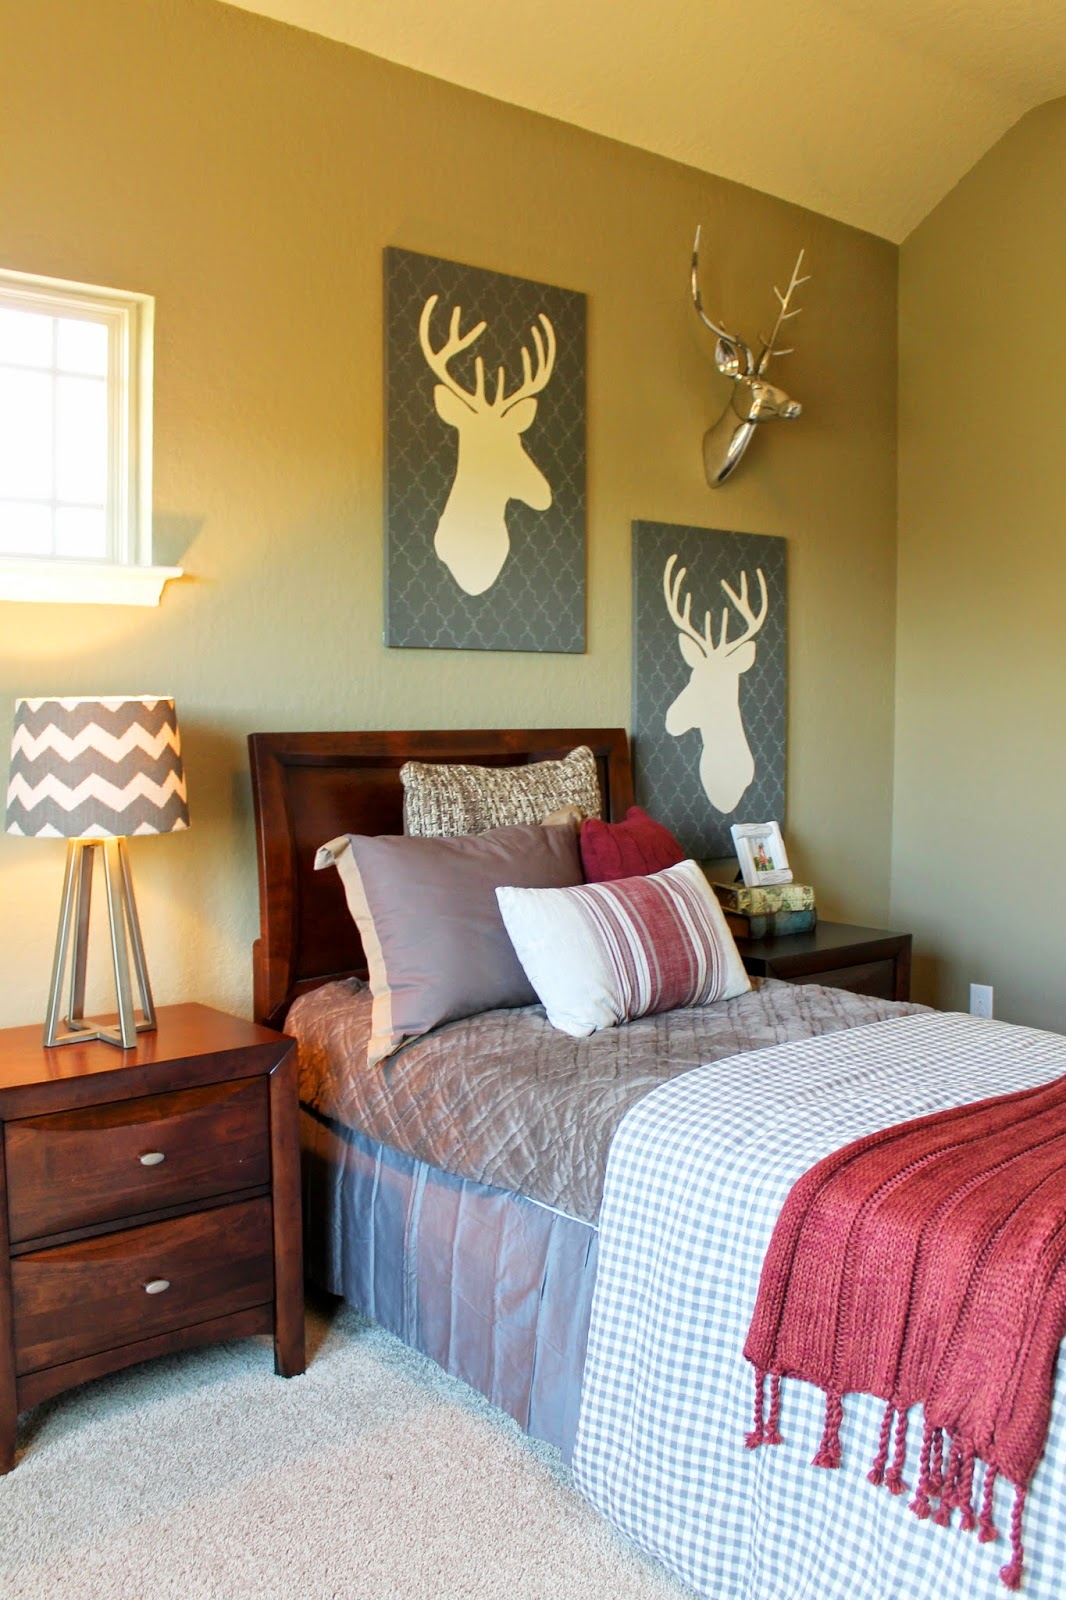 Woodland Decor You See Some Books About The Outdoors Stack On Nightstand And A Simple Silver Faux Deer Head Is Just He Right Amount To Balance